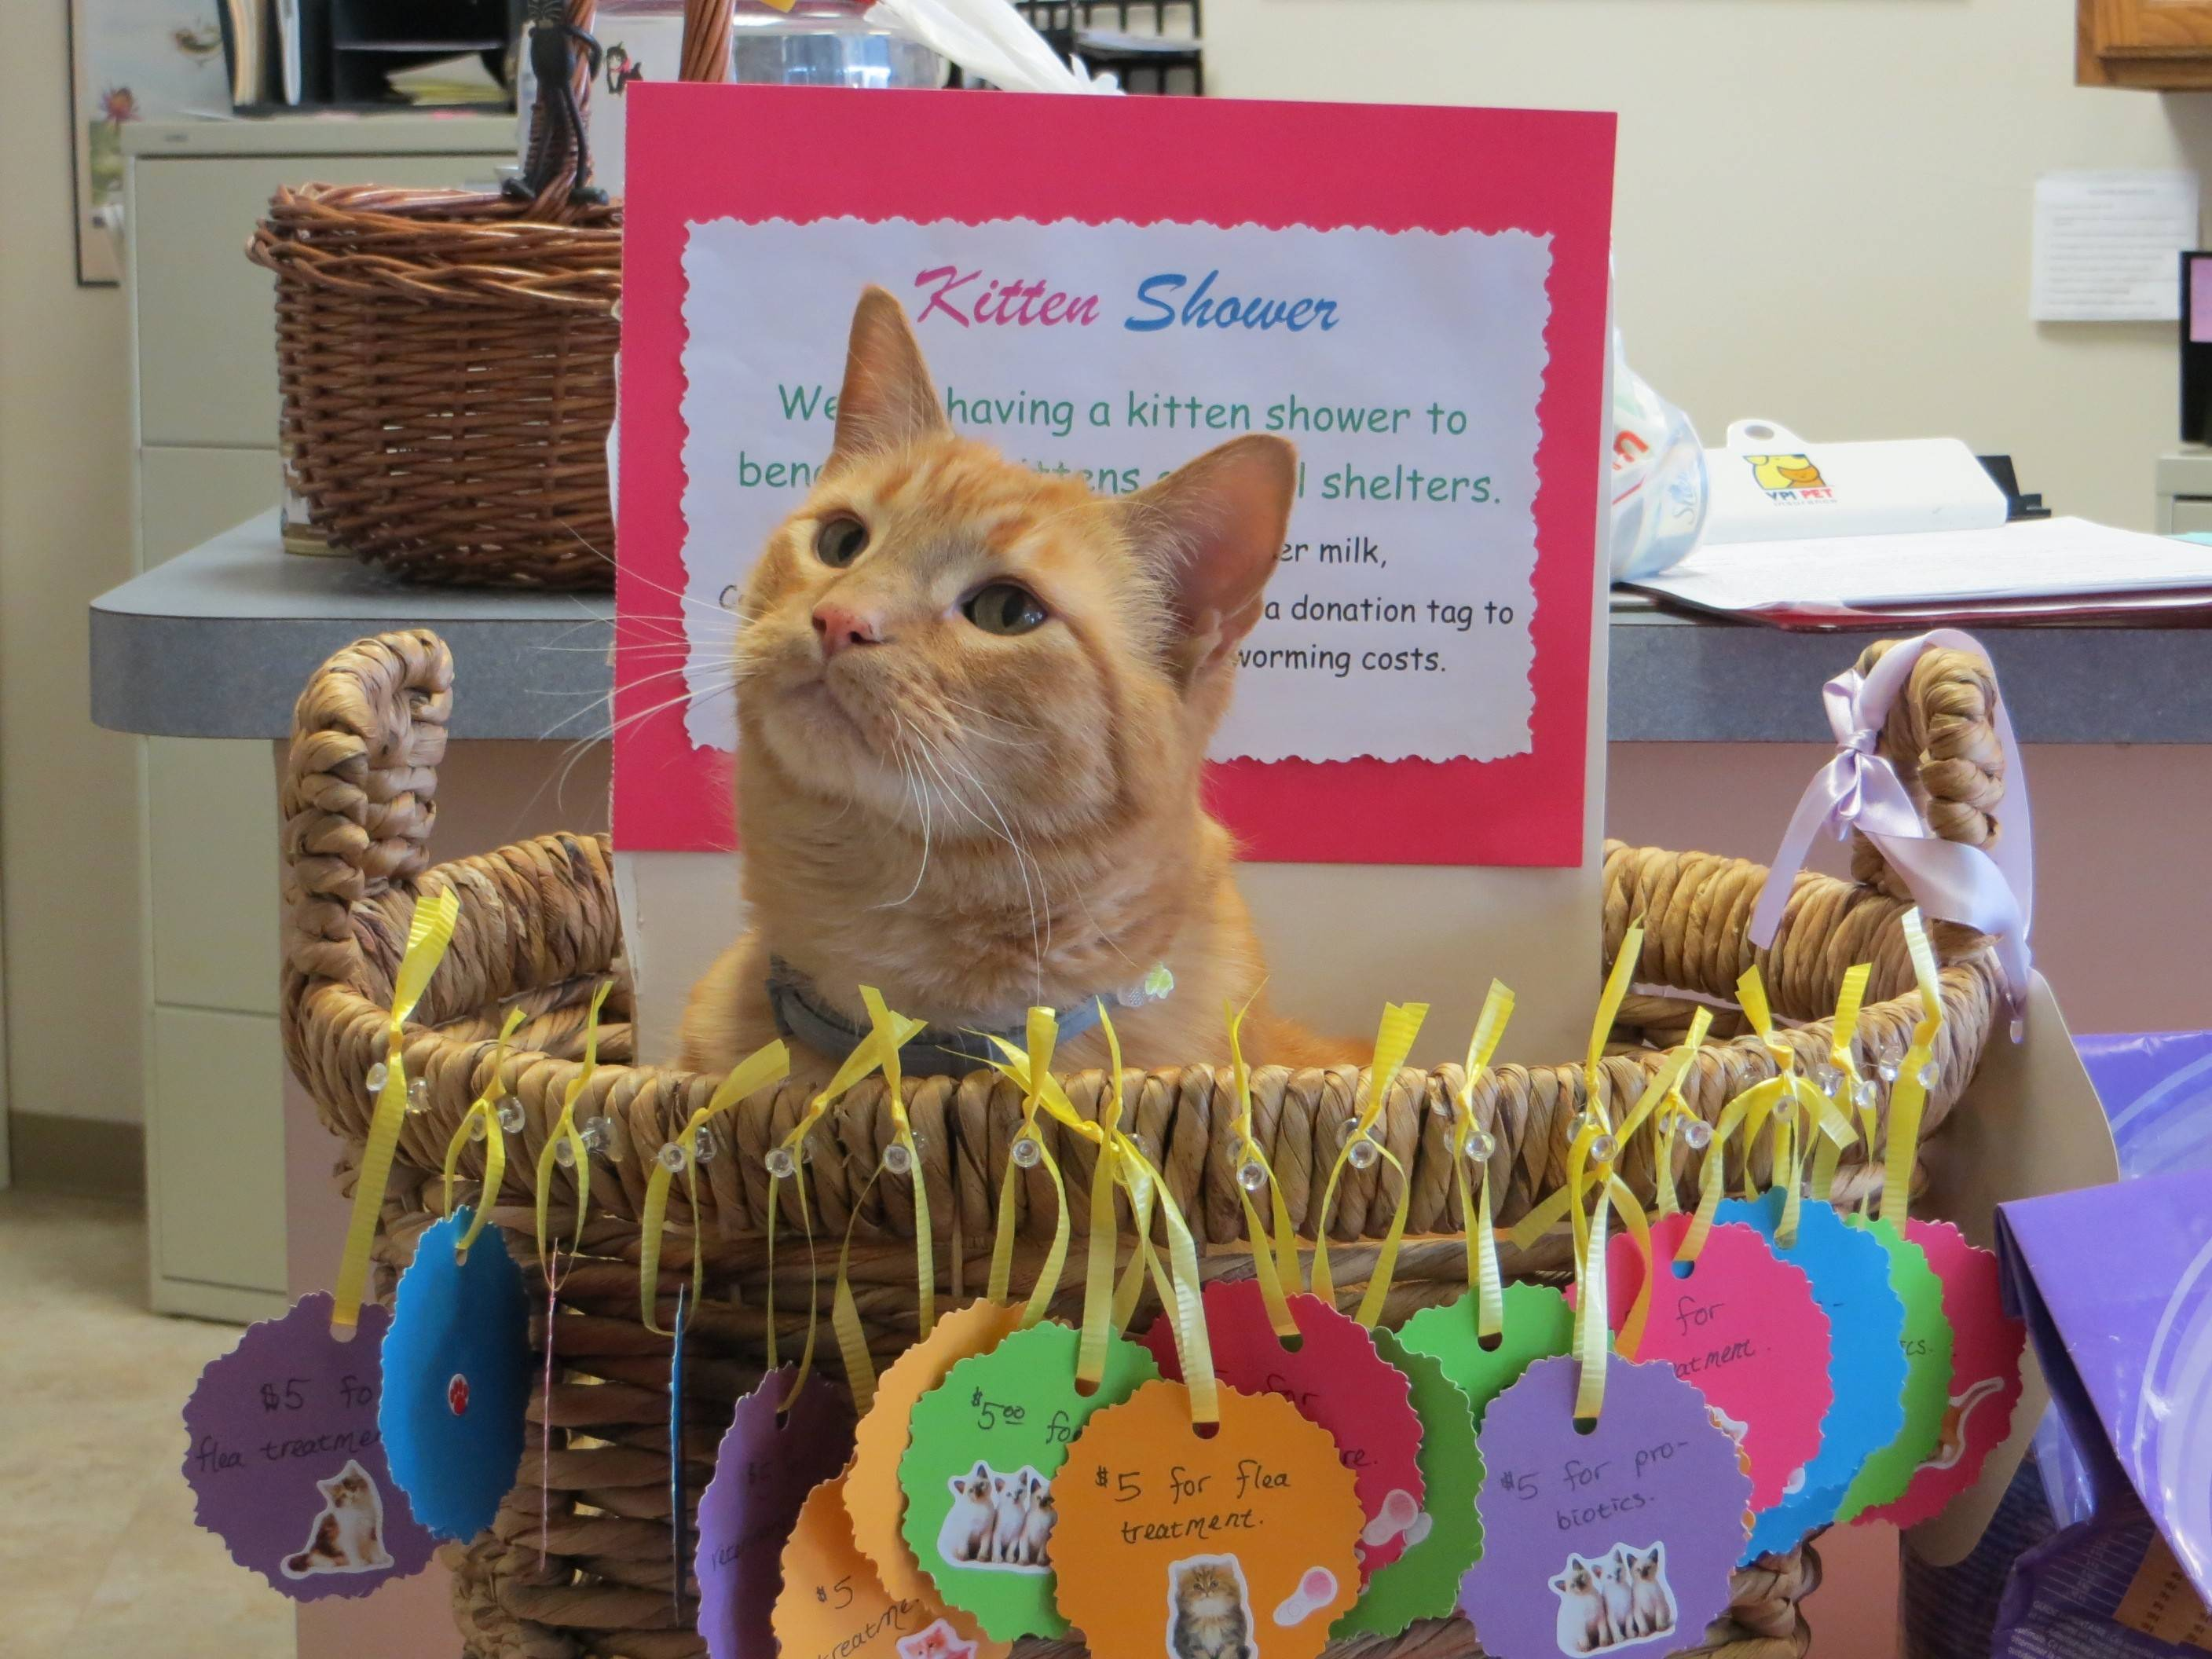 Leon, the Arlington Cat Clinic's resident feline, sits in the Kitten Shower donation basket asking for your donations to help shelter kittens.